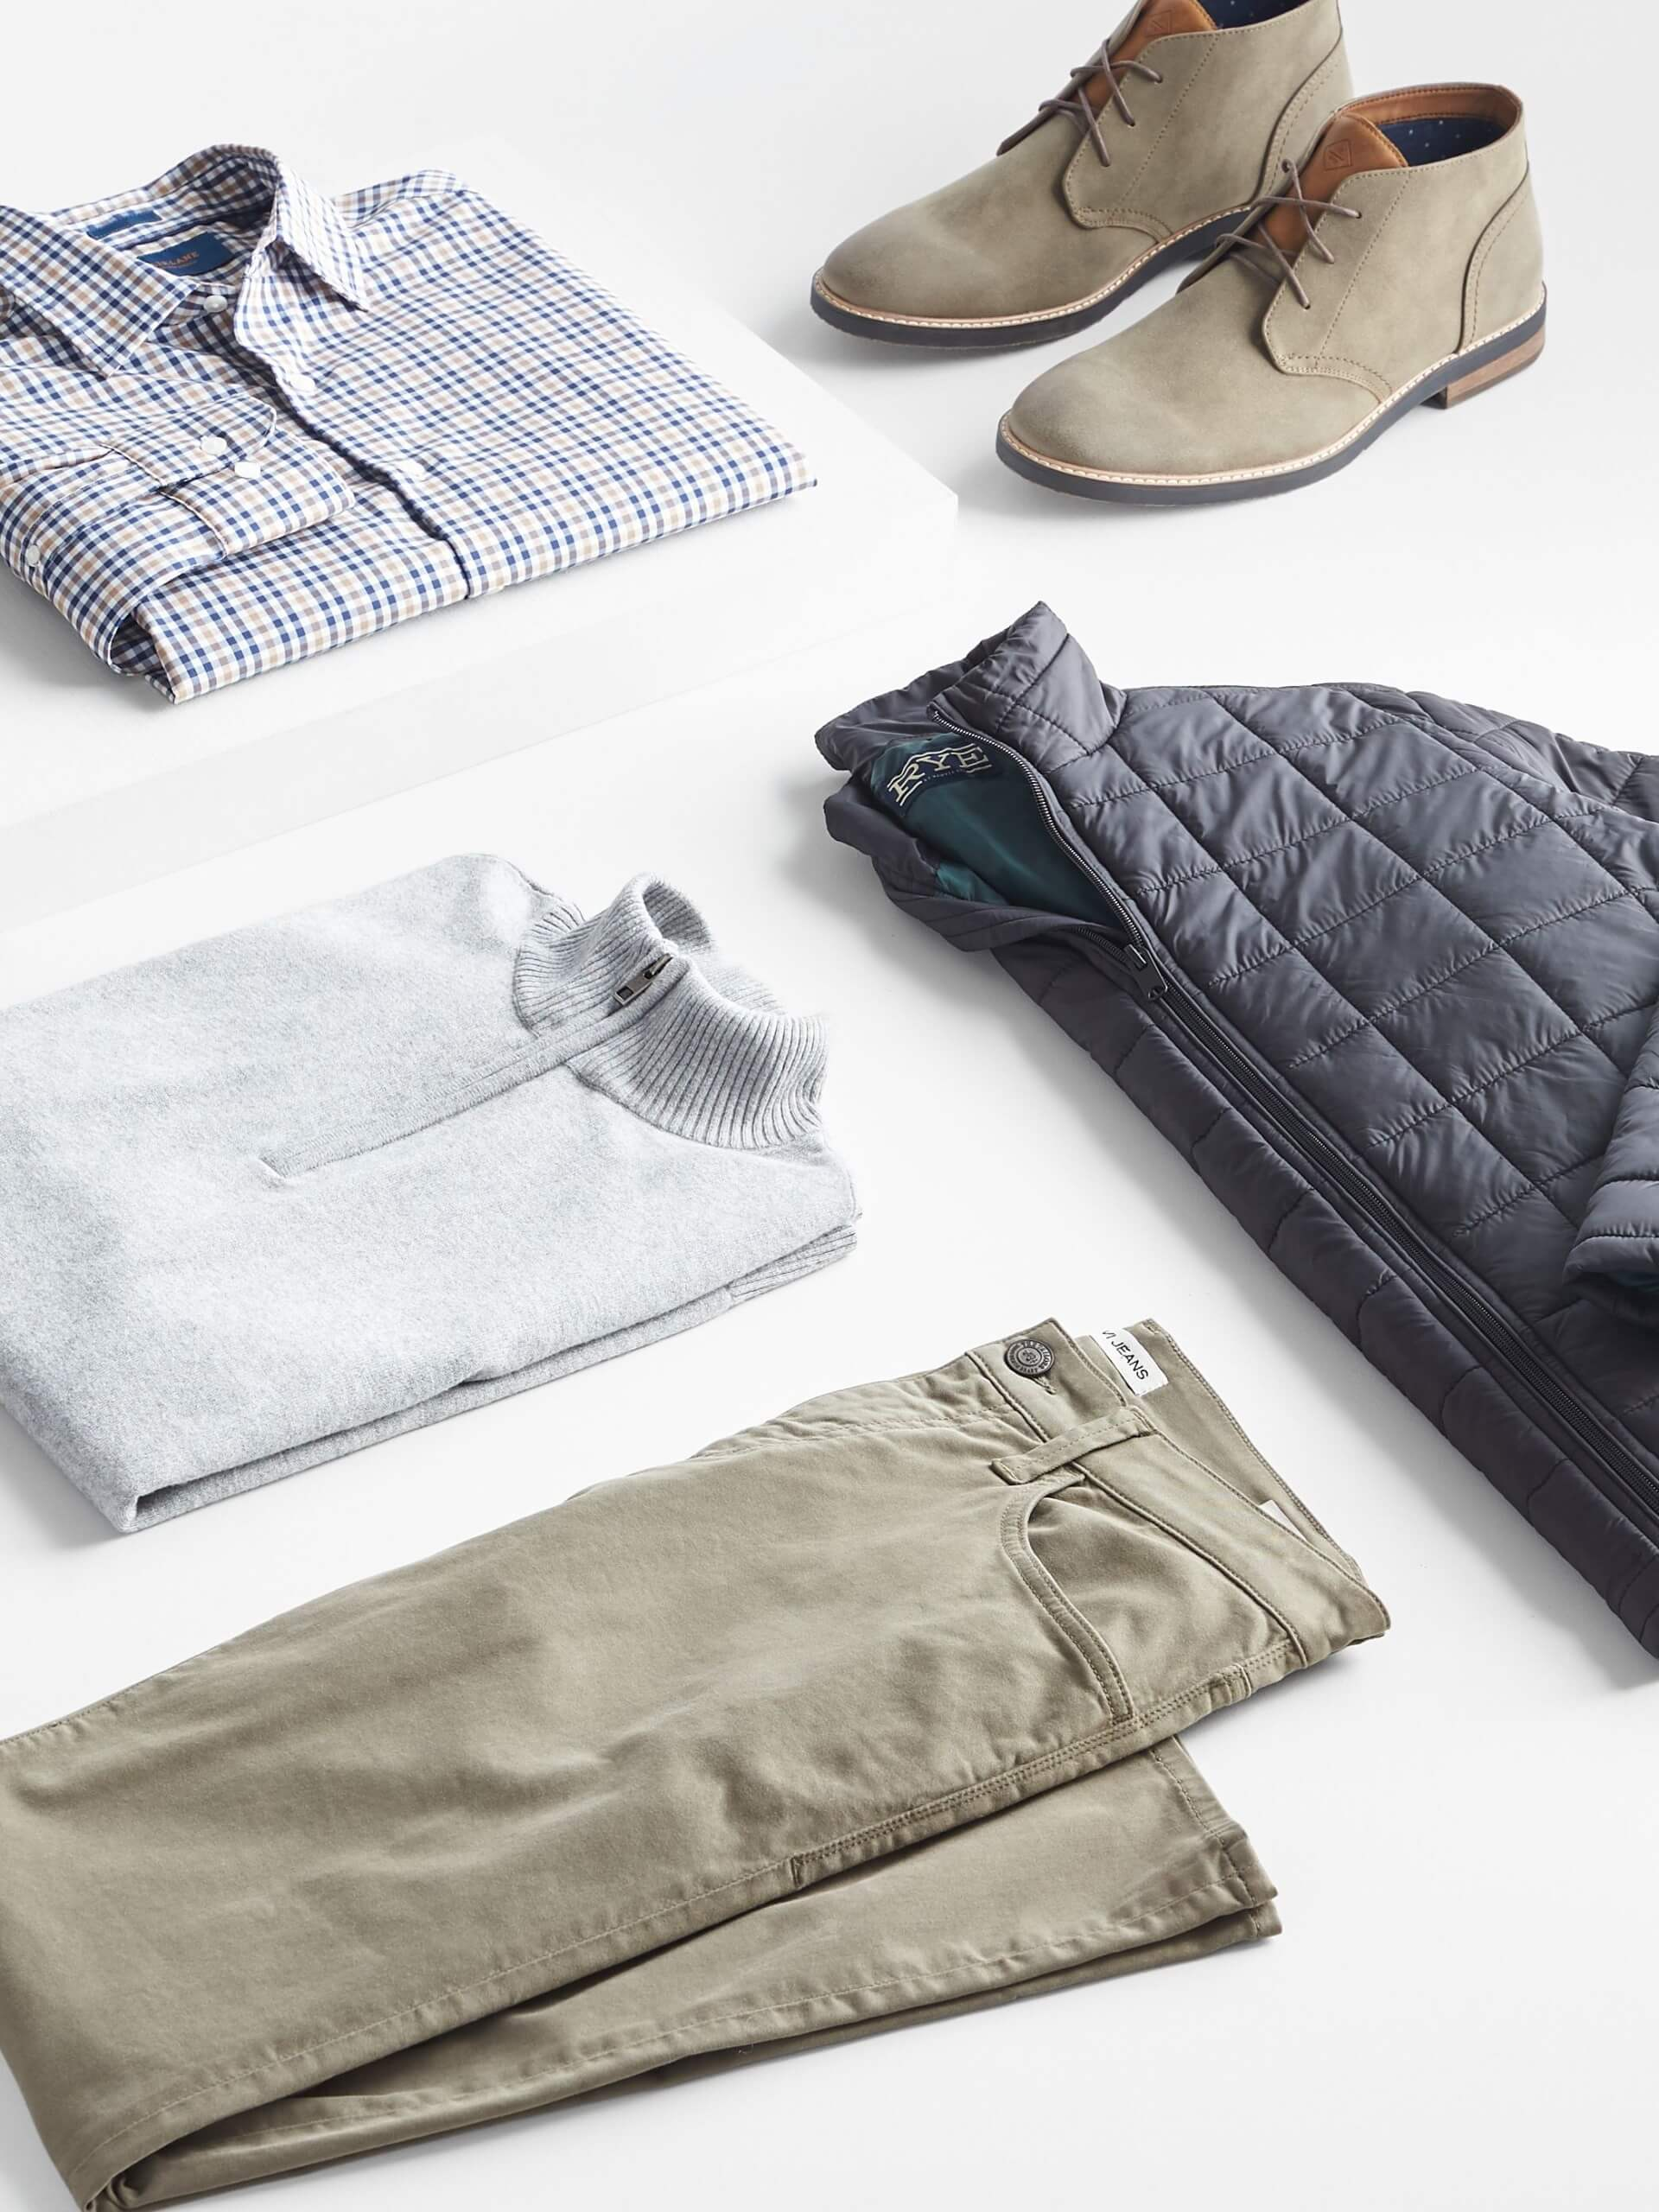 Stitch Fix Men's outfit laydown featuring white and blue button-down shirt, beige chukkas, grey quarter-zip pullover, olive-green pants, and black puffer jacket.